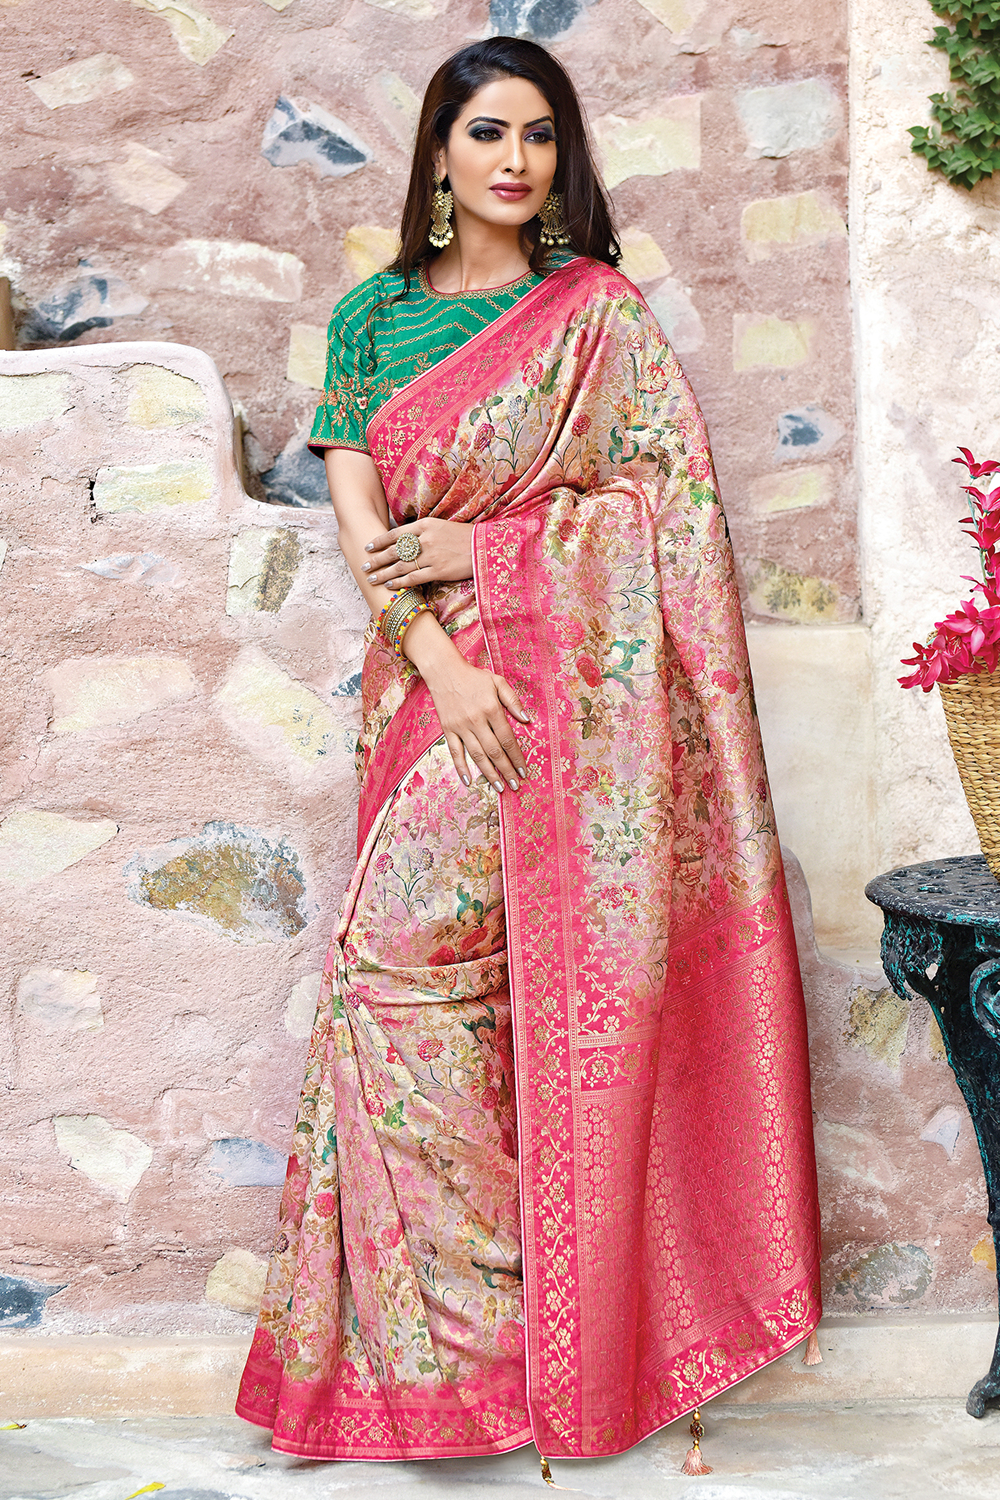 silk saree with ornate floral prints  flourishing colors and immaculate detail